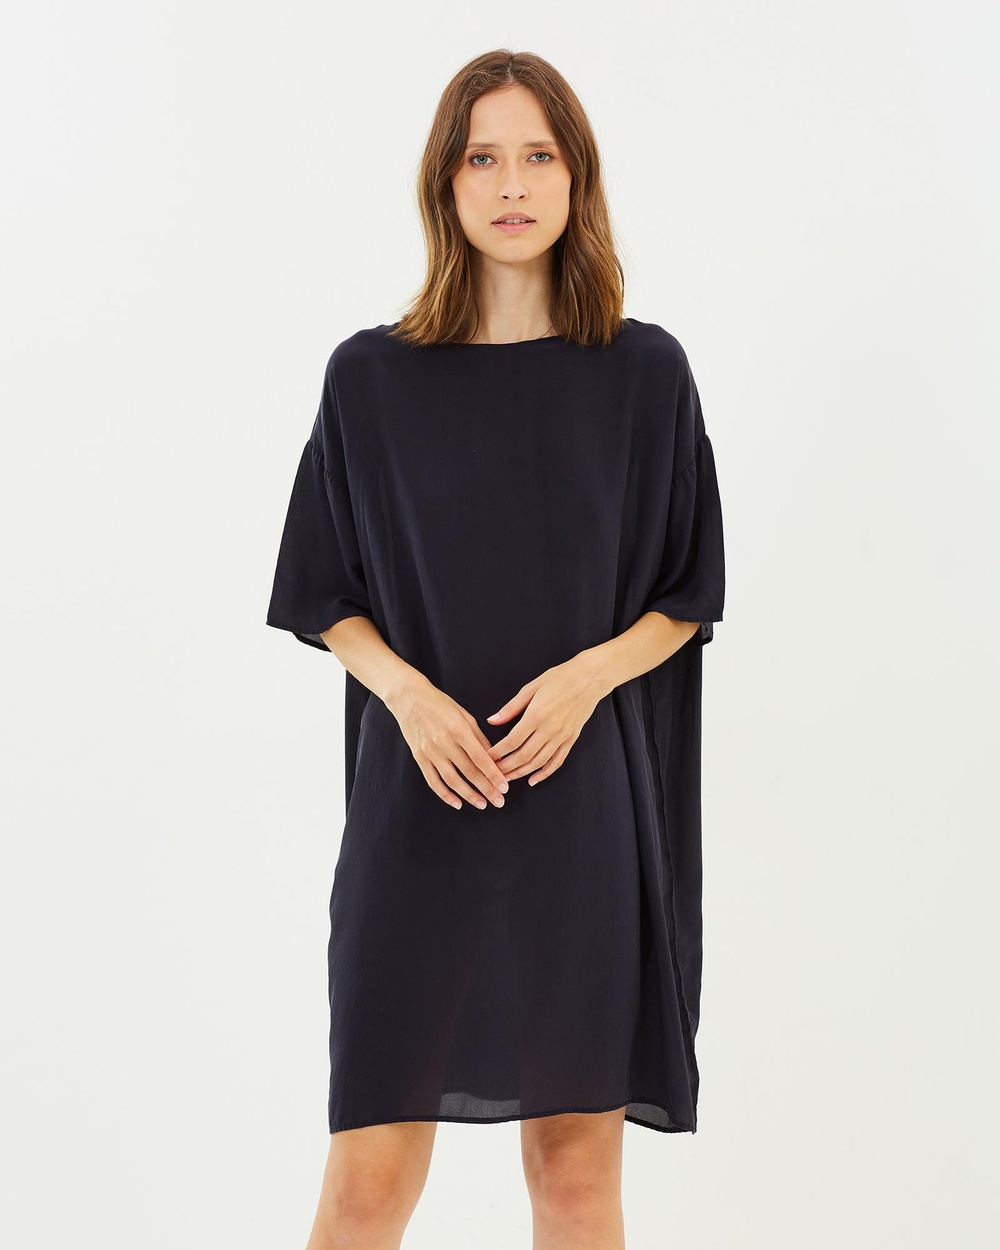 Primness Benic Dress Dresses Black Benic Dress